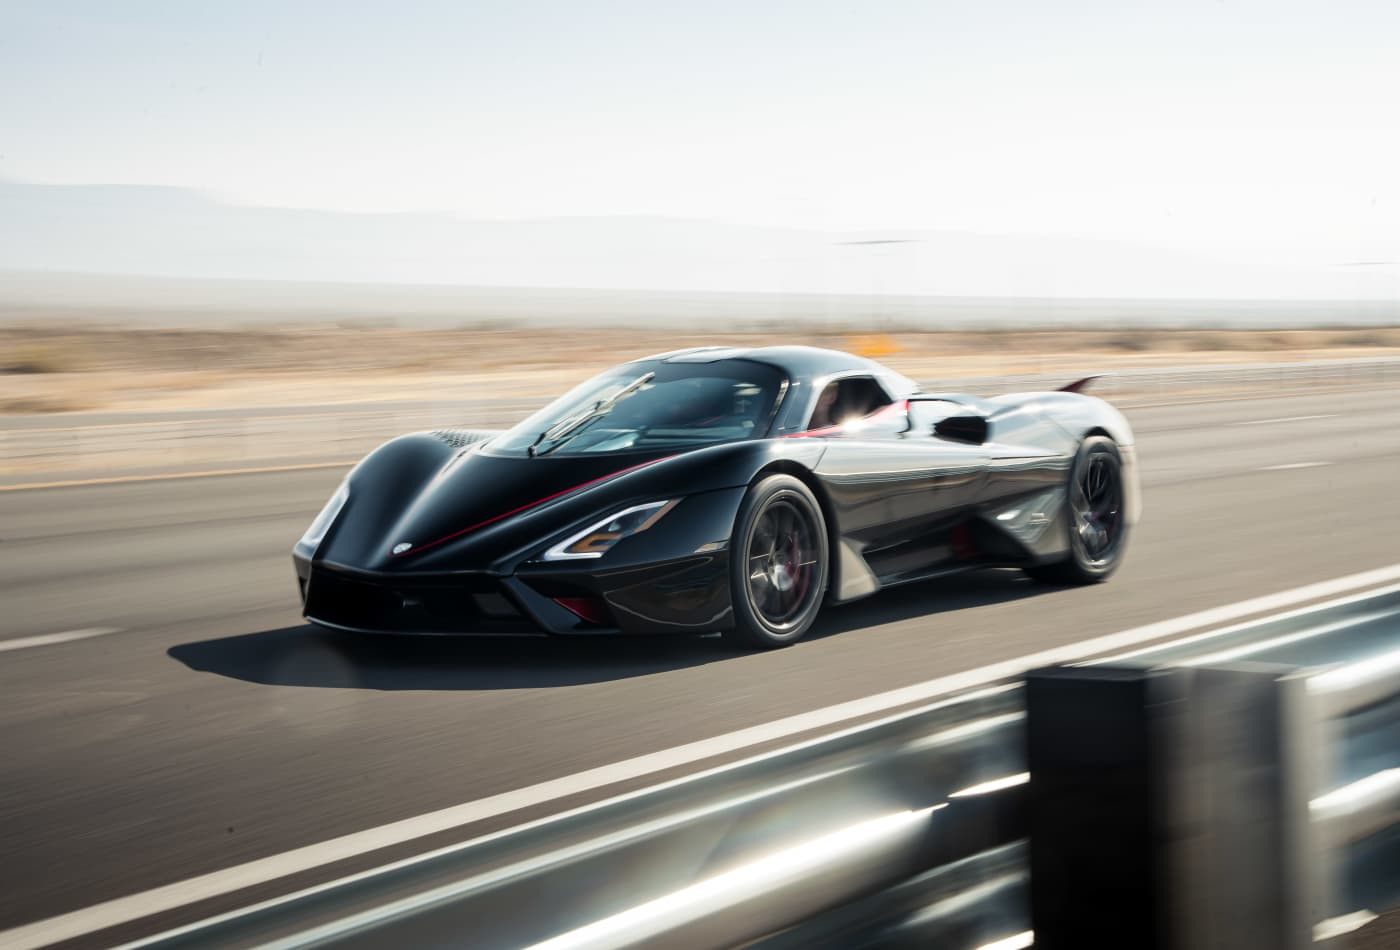 This small American car company now has the world's fastest car (316 mph) — take a look